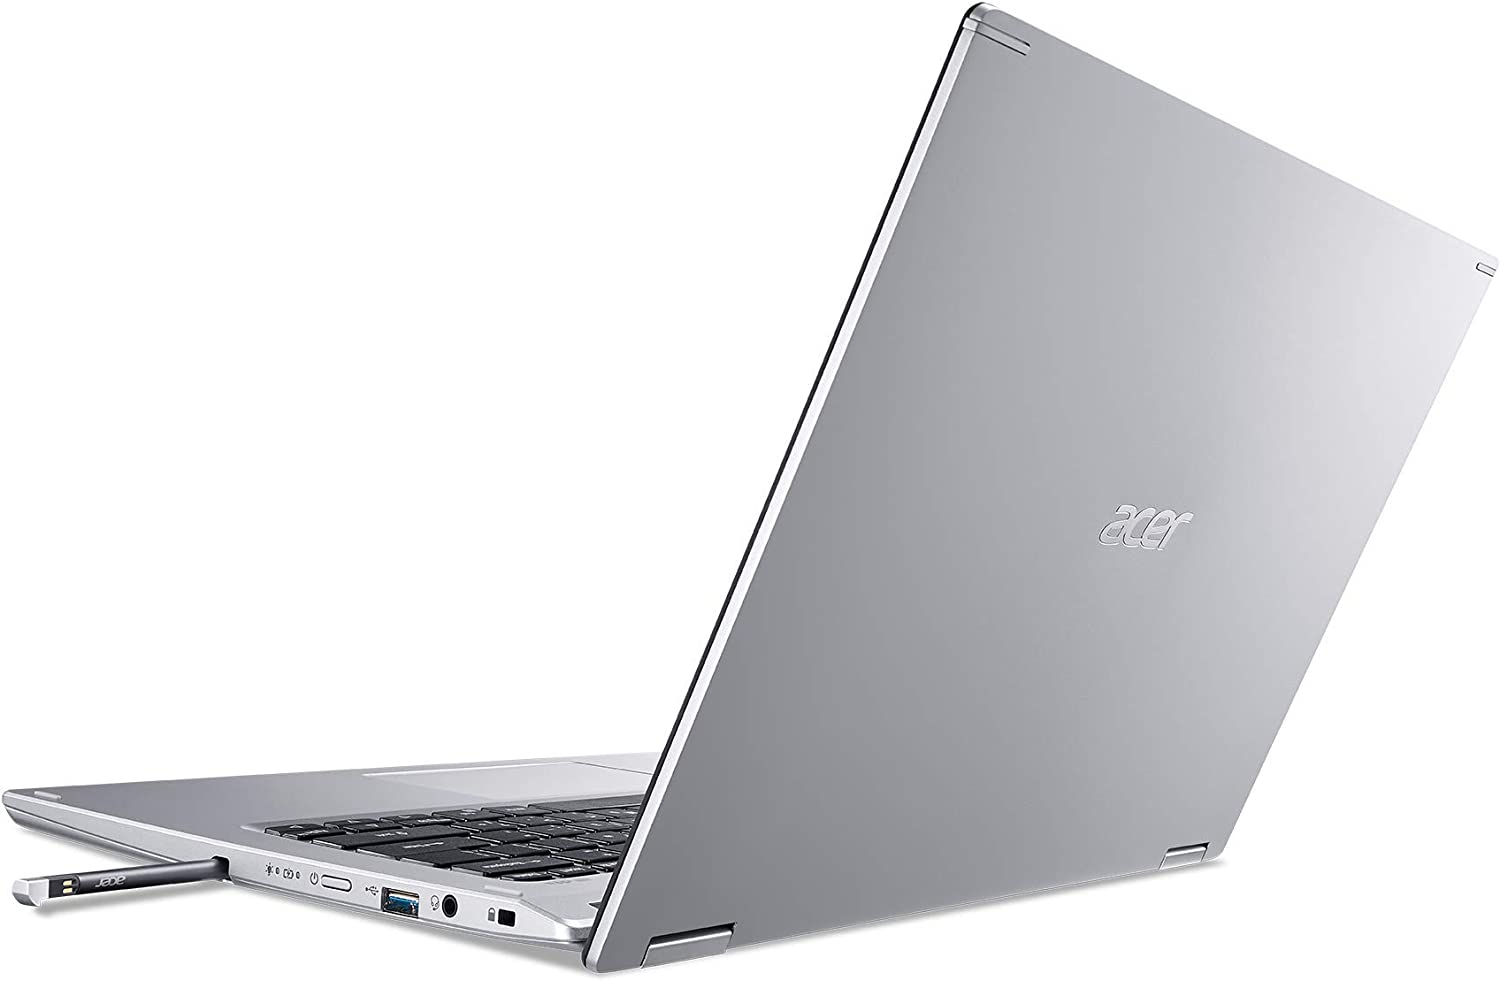 2020 Acer Spin 3 2-in-1 Laptop: 10th Gen Core i7-1065G7, 512GB SSD, 8GB RAM, 14